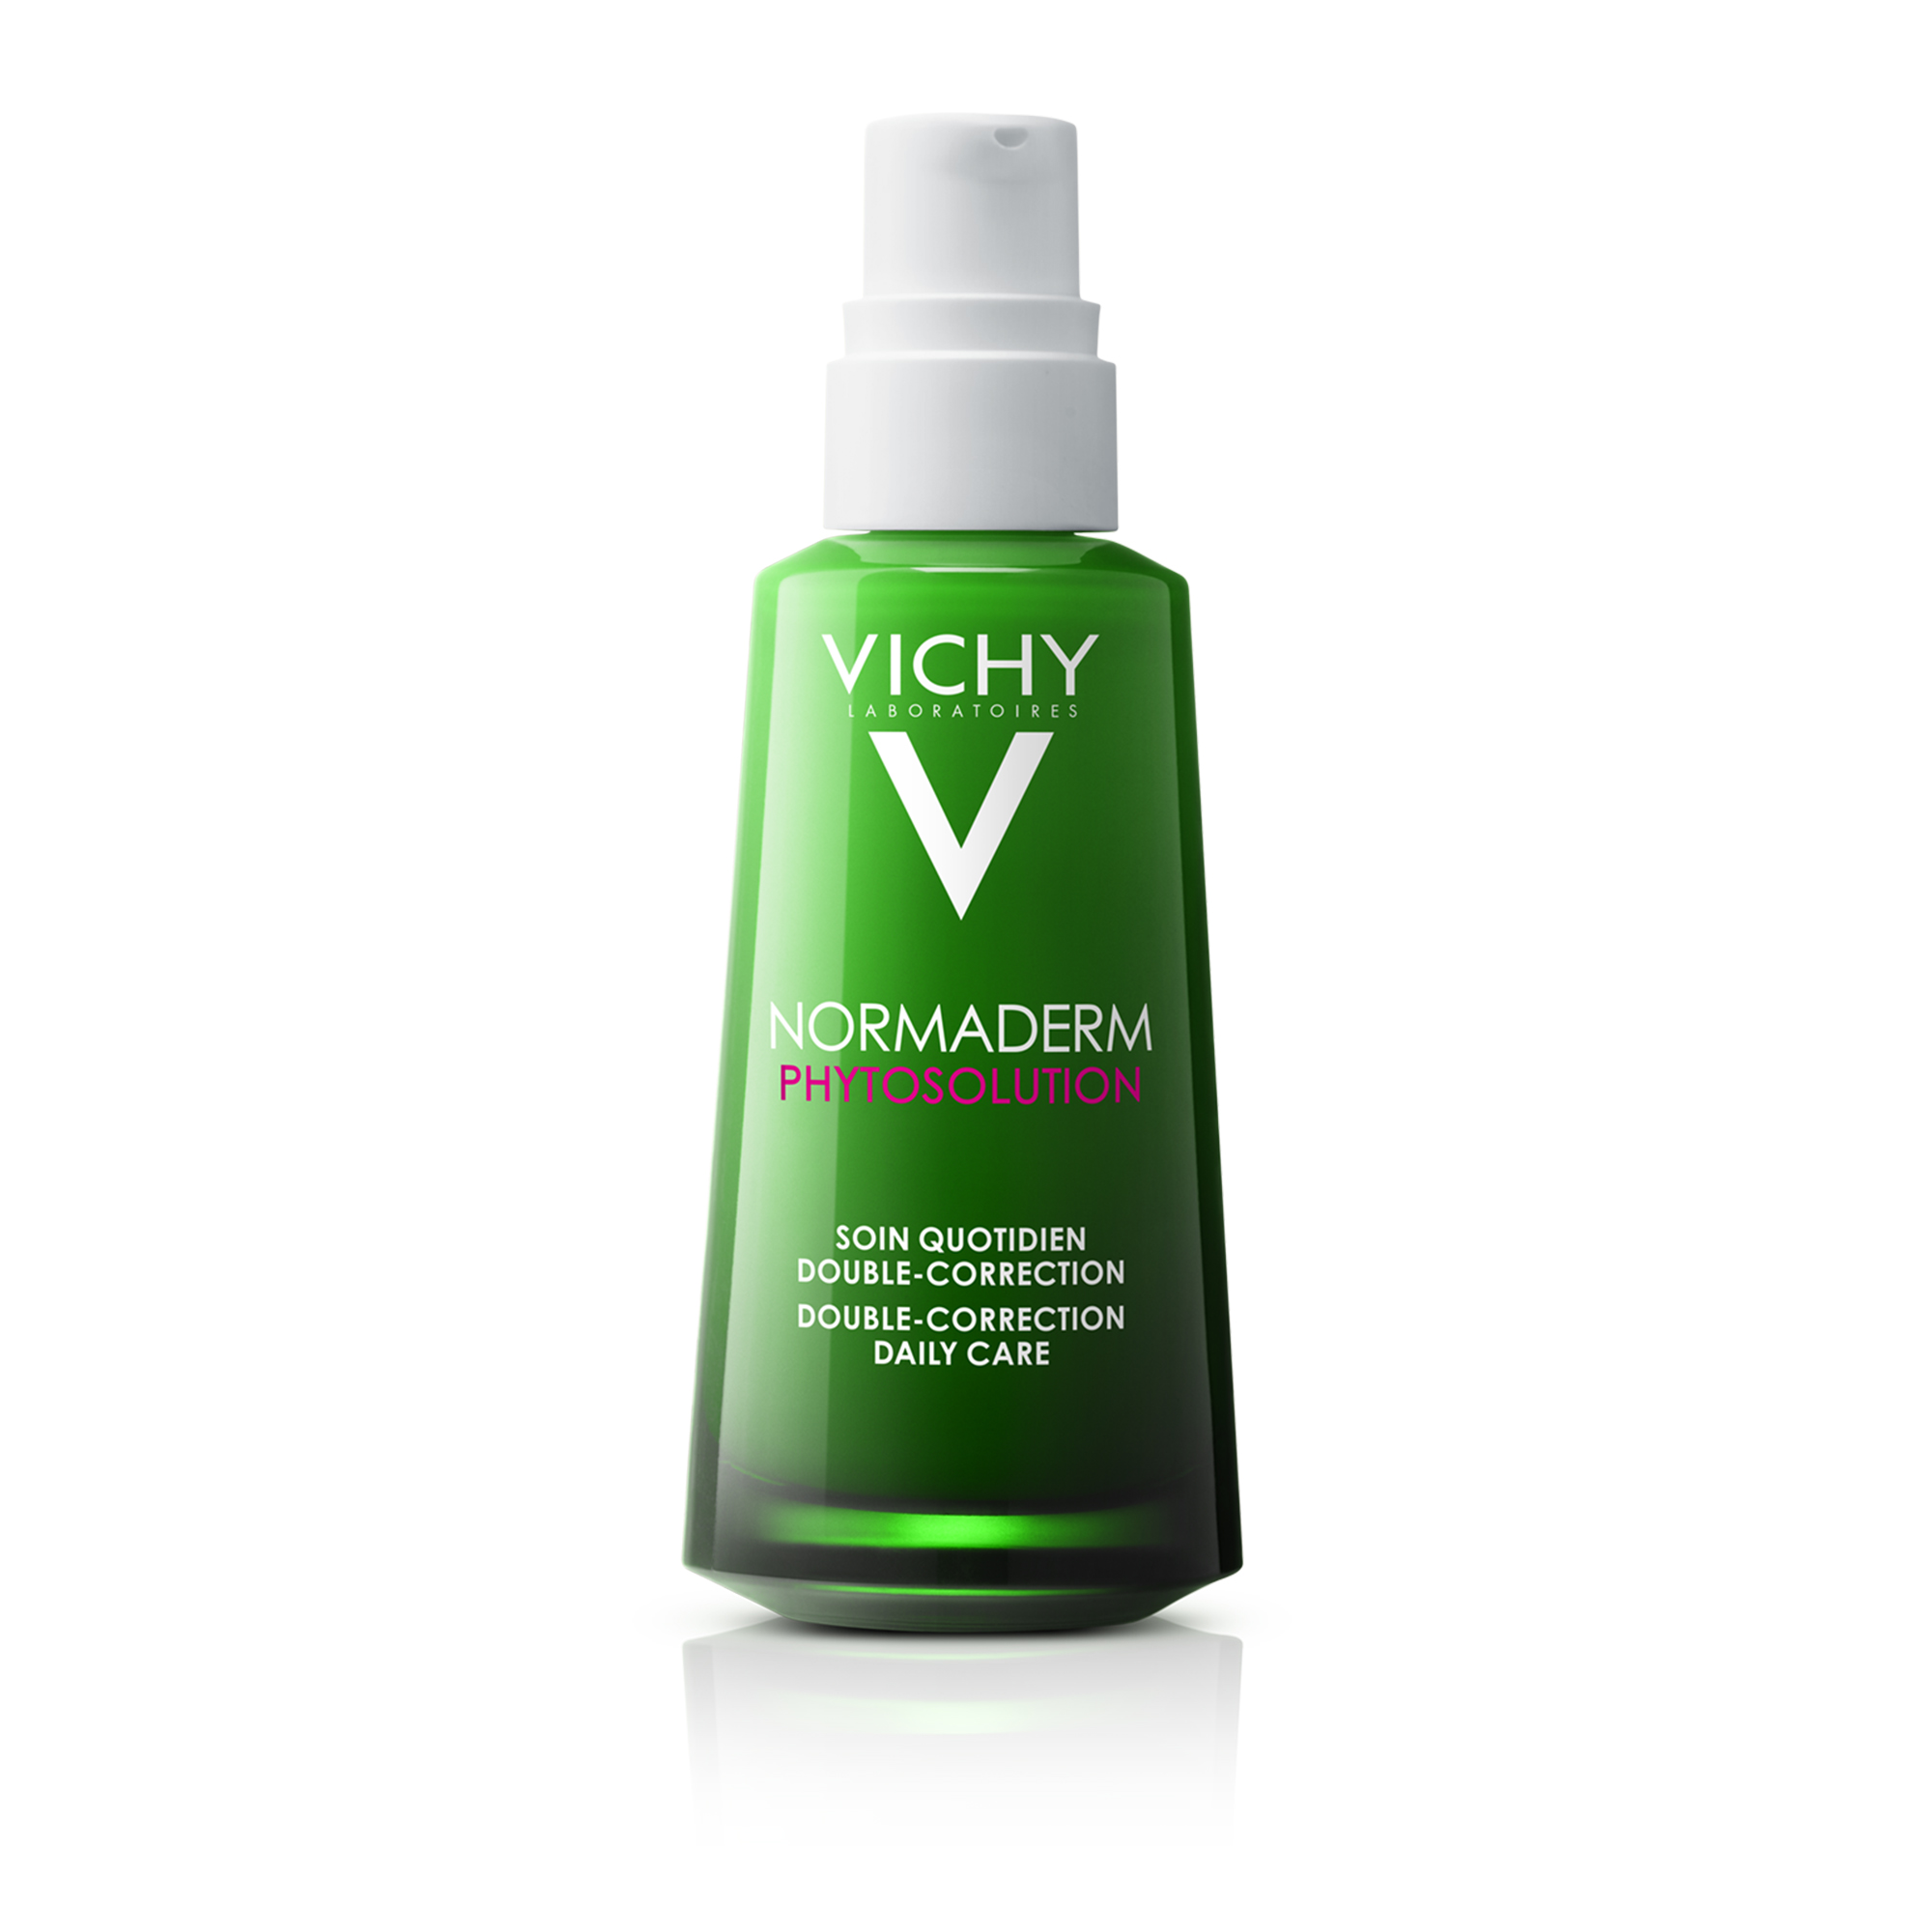 VICHY ND DNEVNA NEGA 50ML